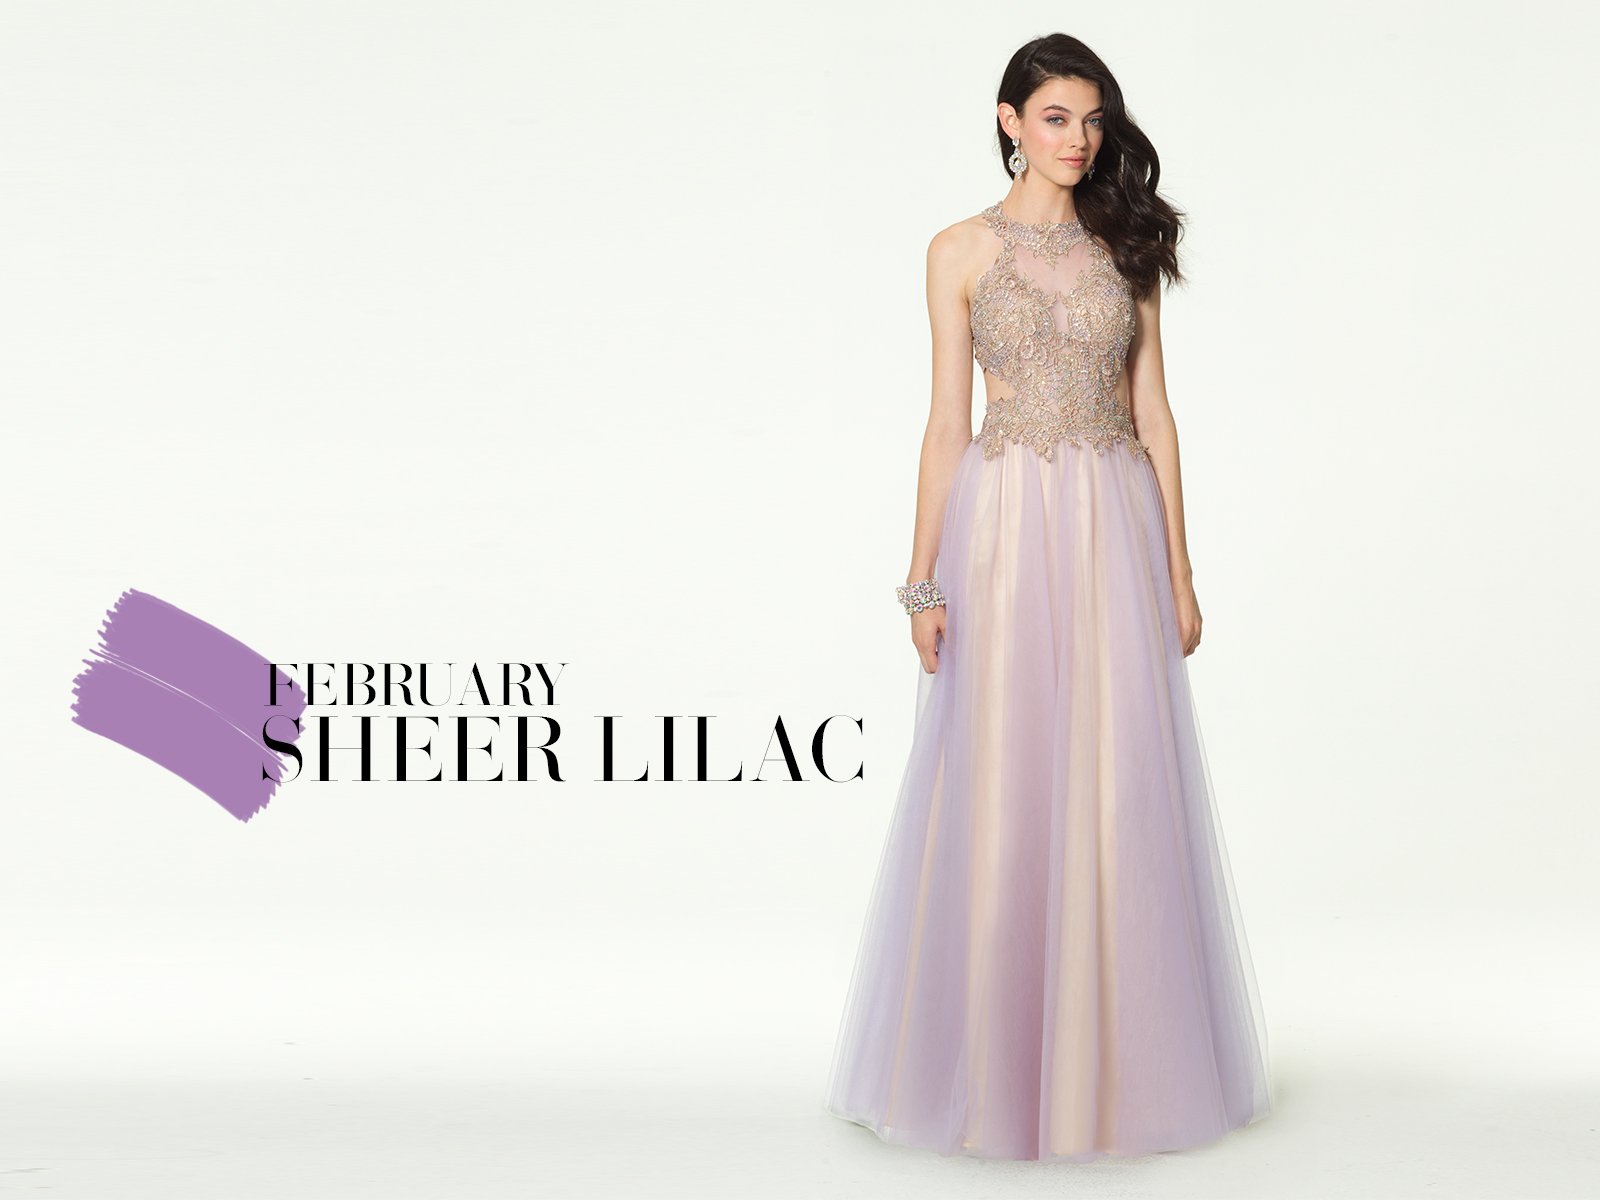 Two Tone Metallic Lace Ballgown Prom Dress by Camille La Vie